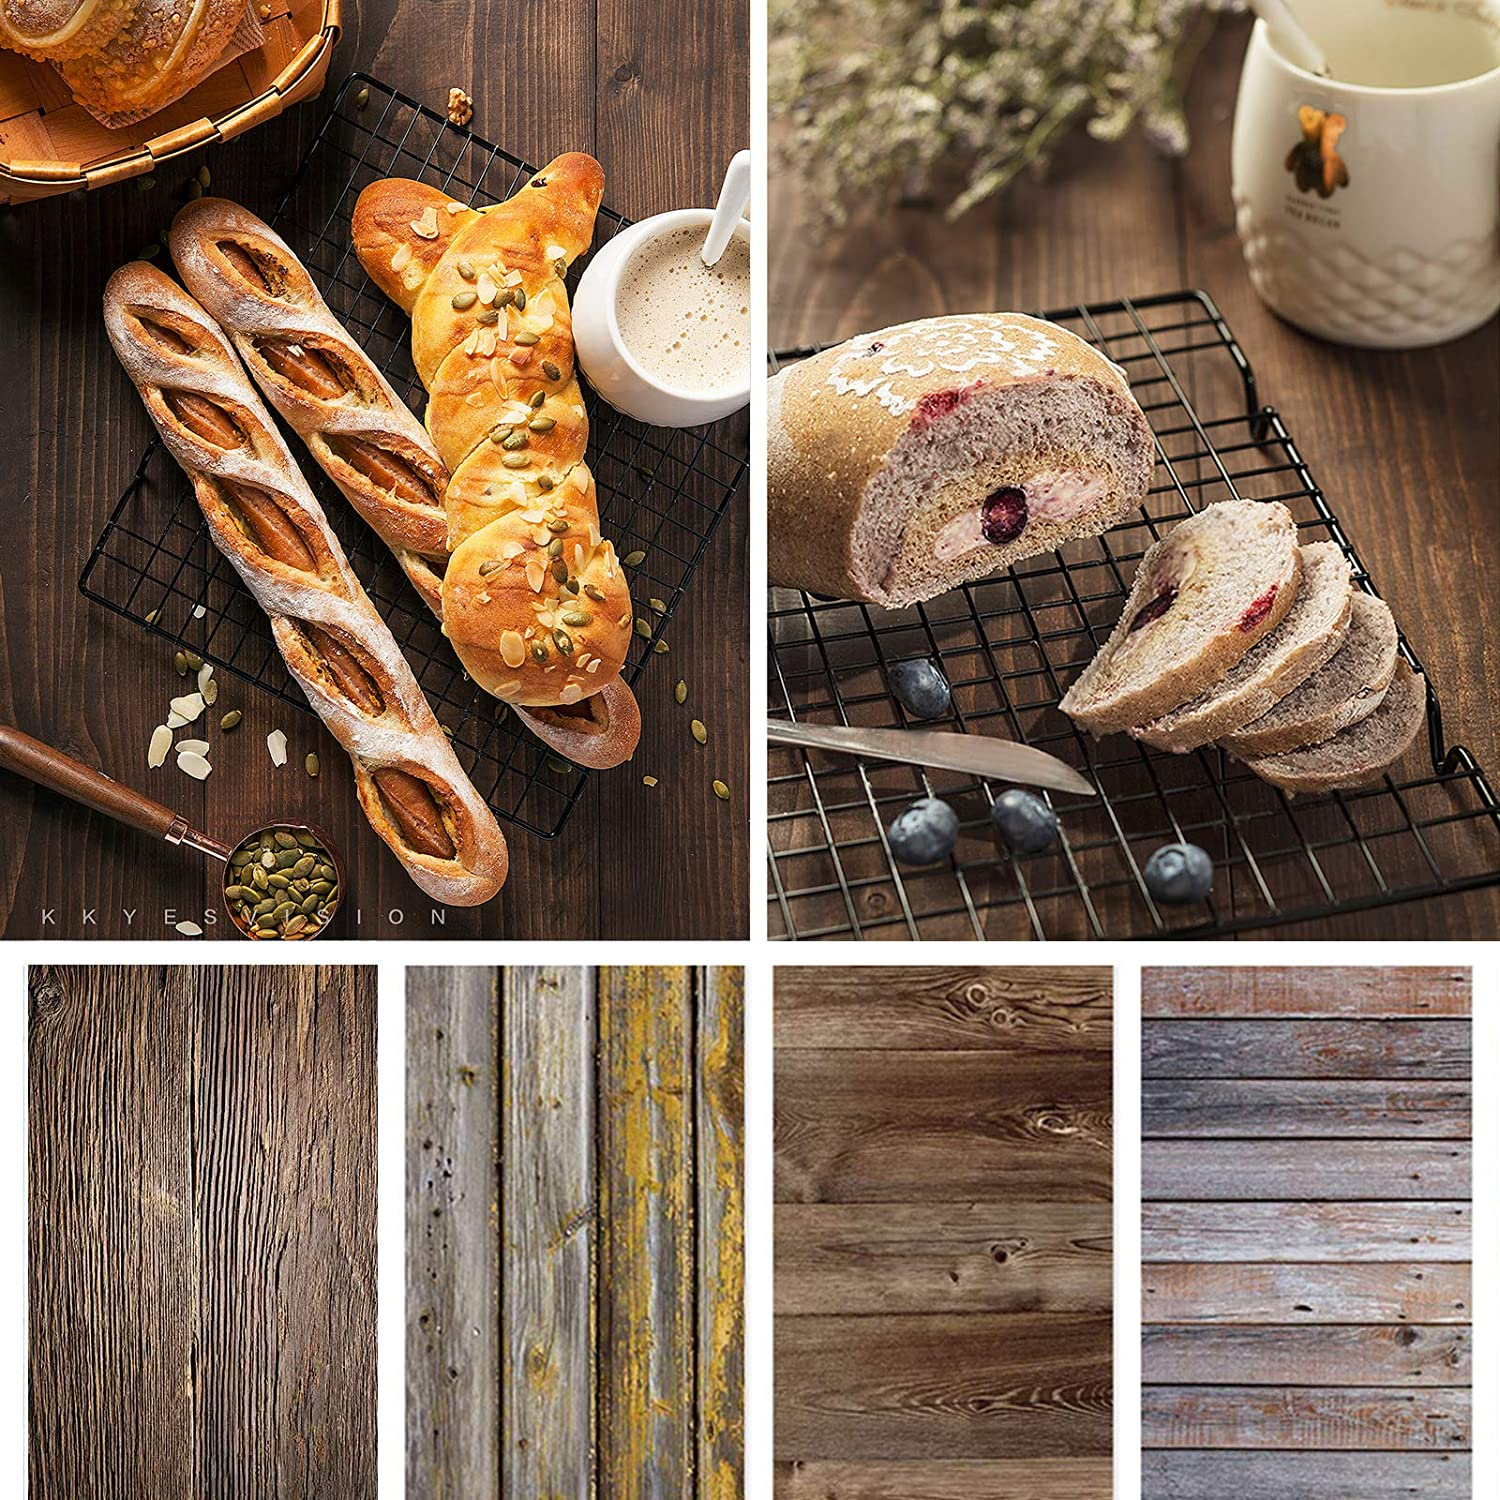 Bcolor Backdrop for Food Photography 4 Pack Kit 22x34Inch/ 56x86cm Wood Photo Background Roll Props Double Sided Rustic for Product Tabletop Photoshoot Pictures, 8 Pattern